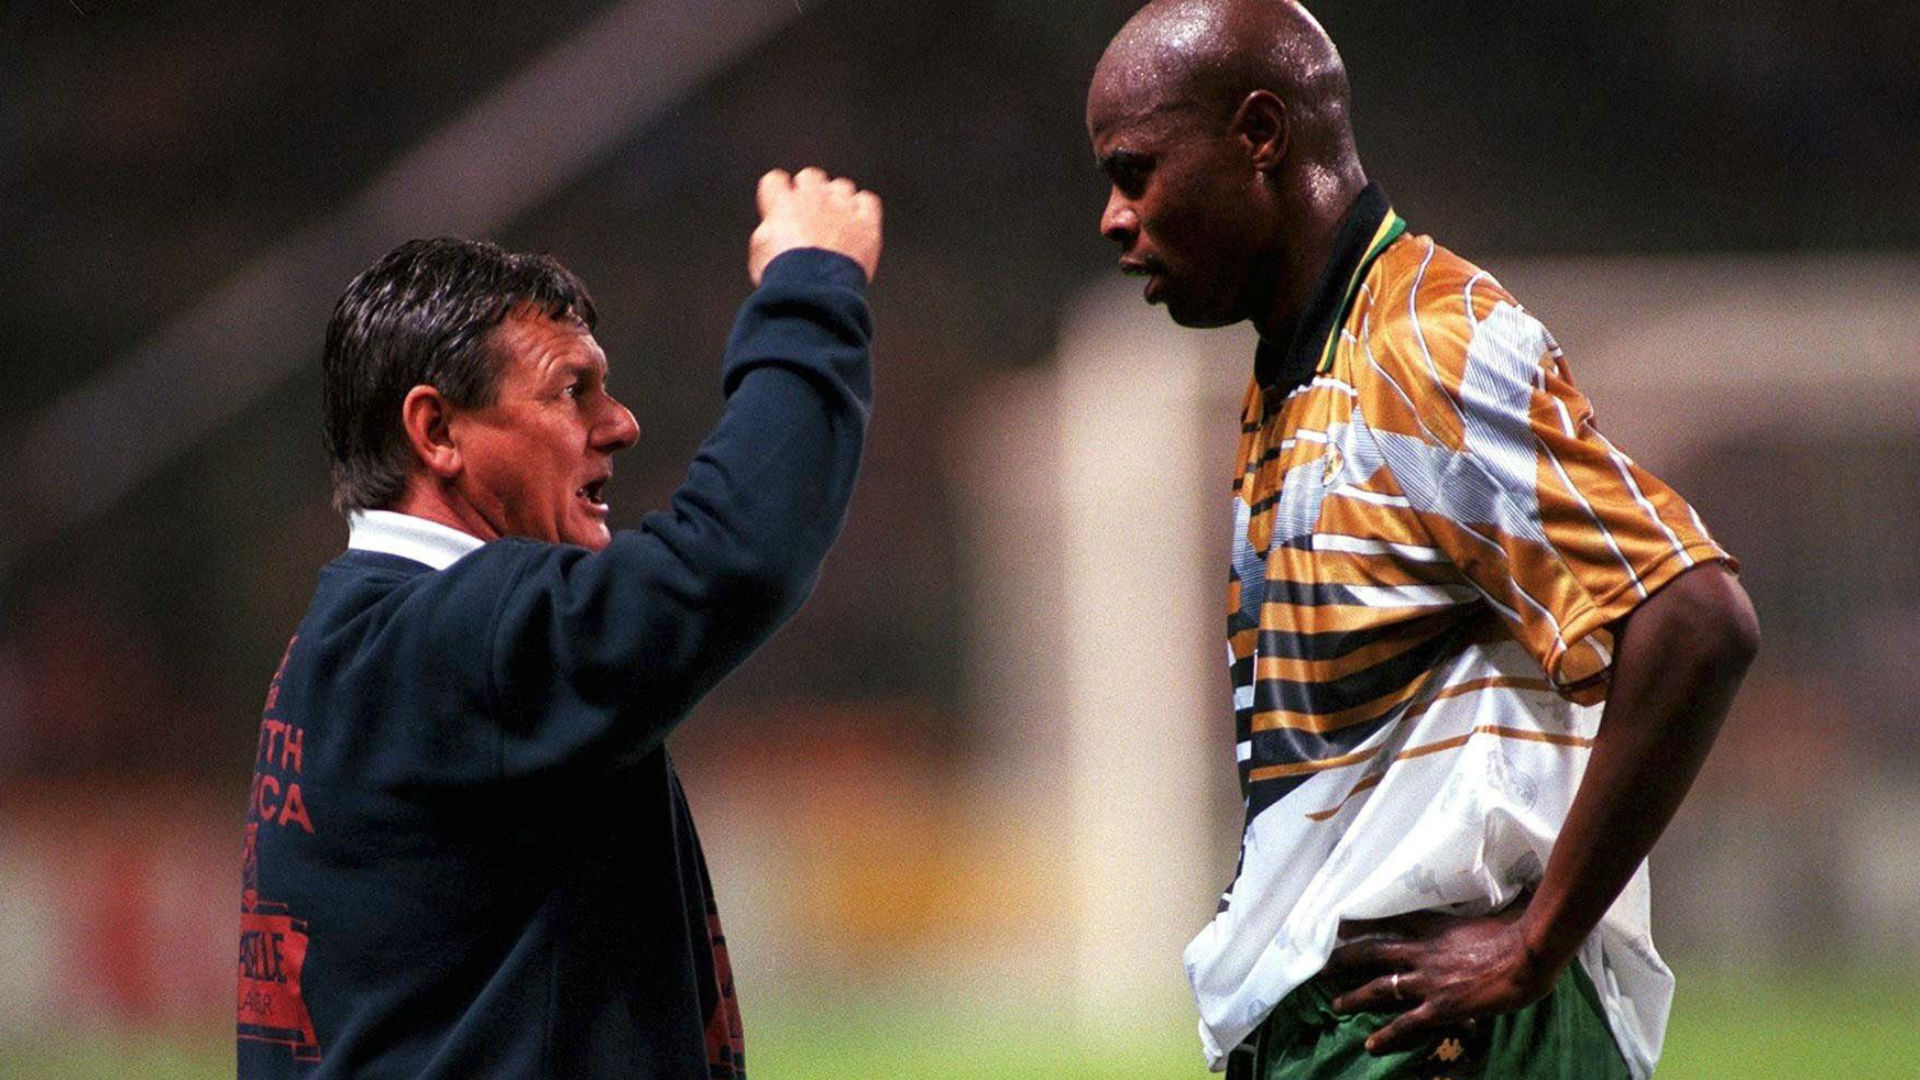 Bafana Bafana legend Phil Masinga has died